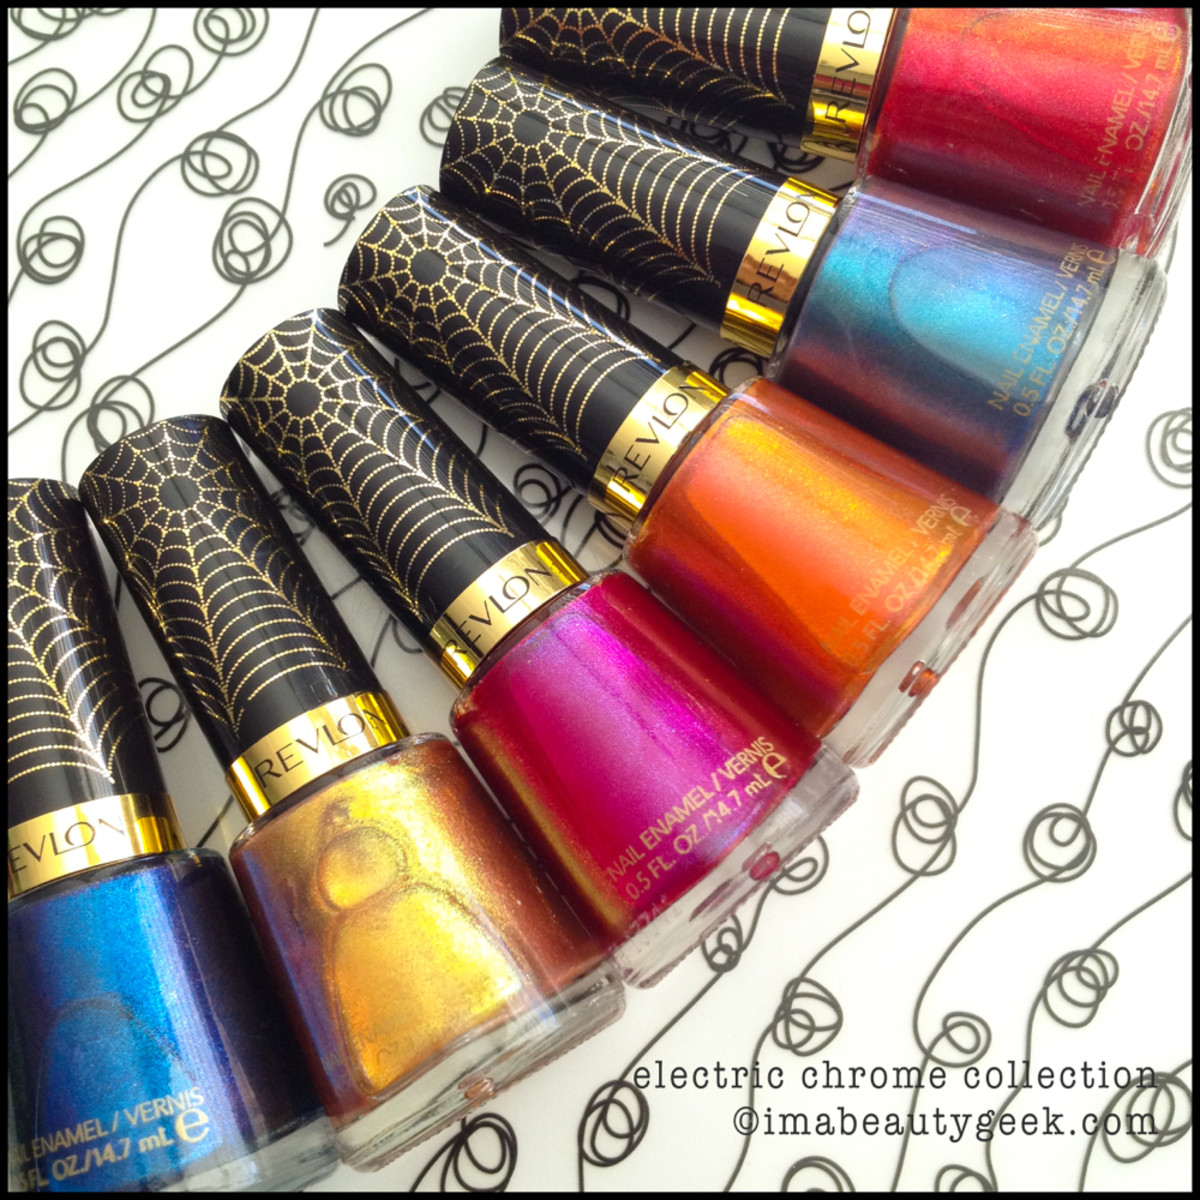 Revlon Spiderman Electric Chrome Collection 2014